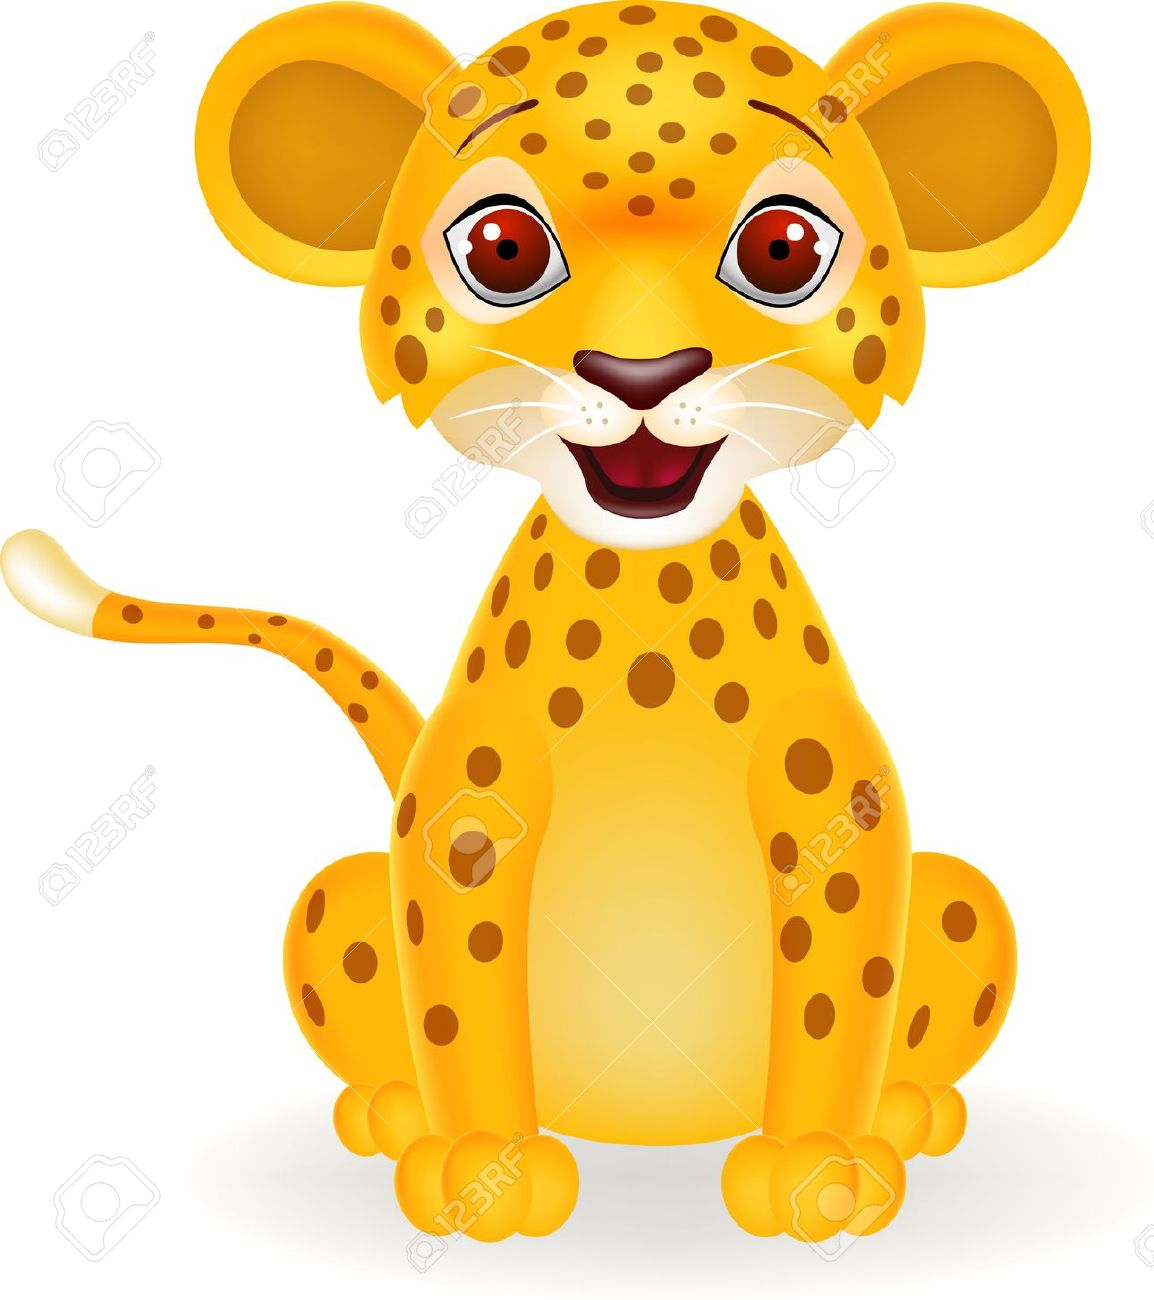 Leopard clipart #1, Download drawings